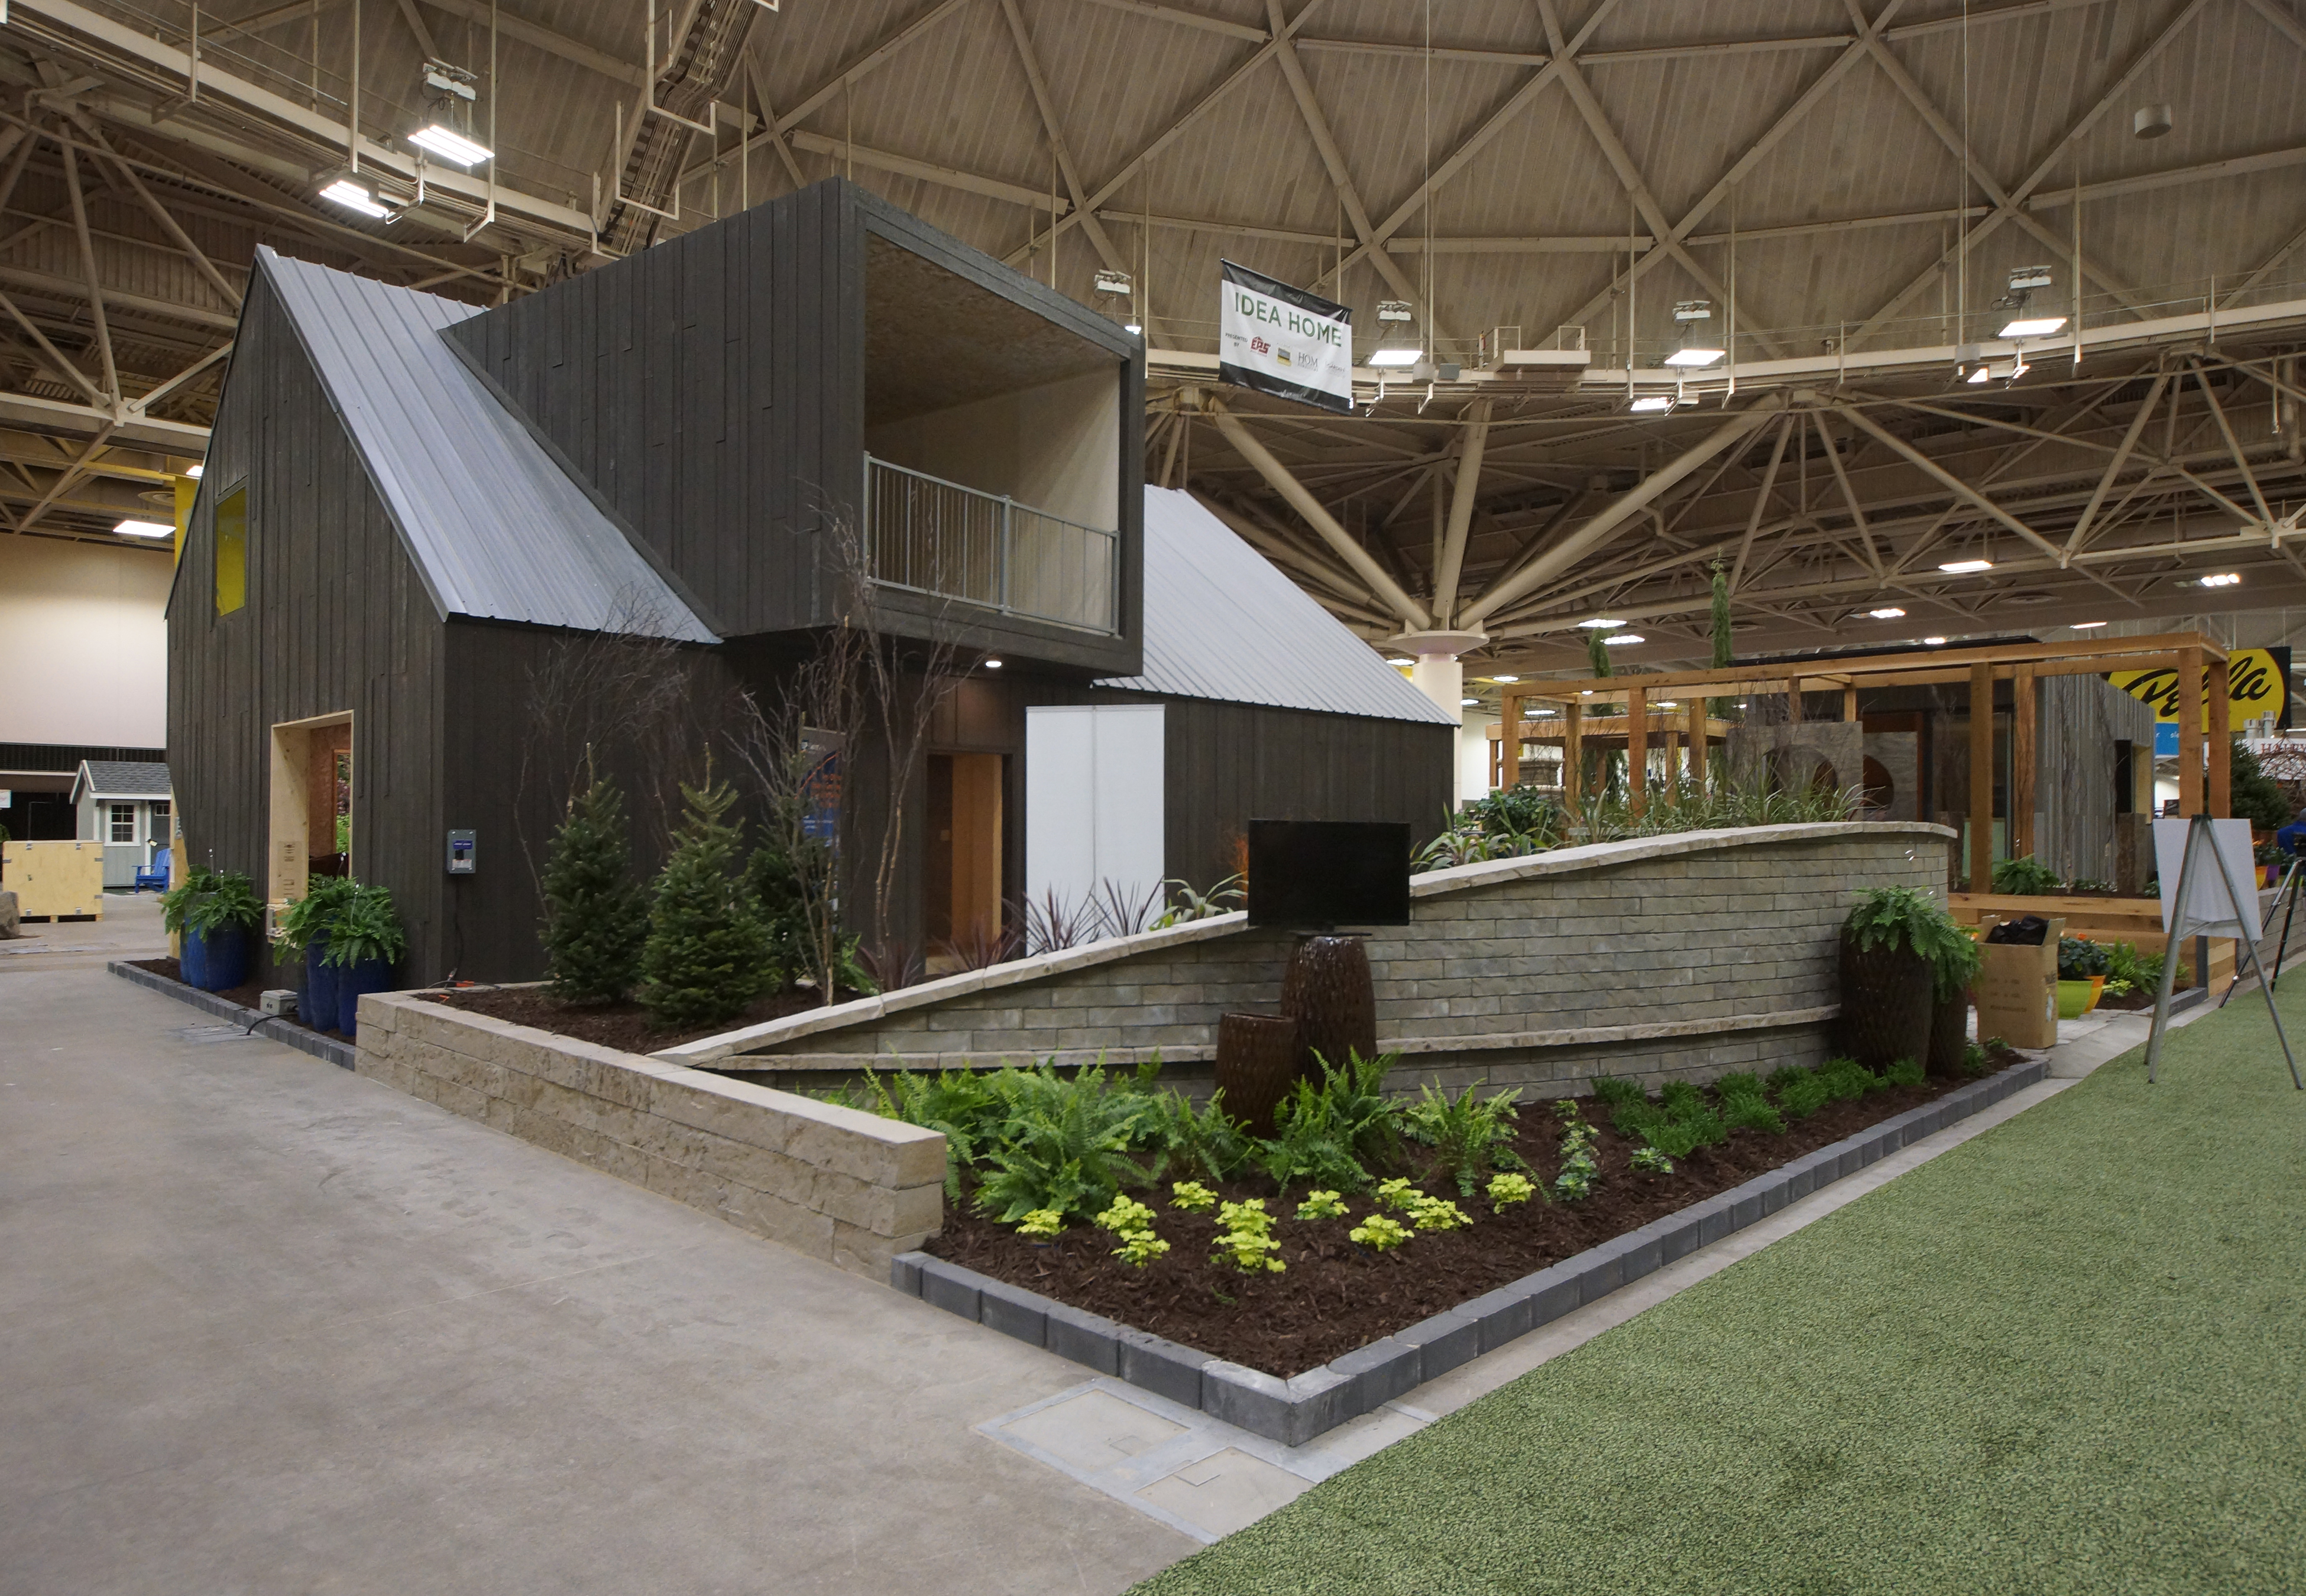 2016 Minneapolis Home + Garden Show